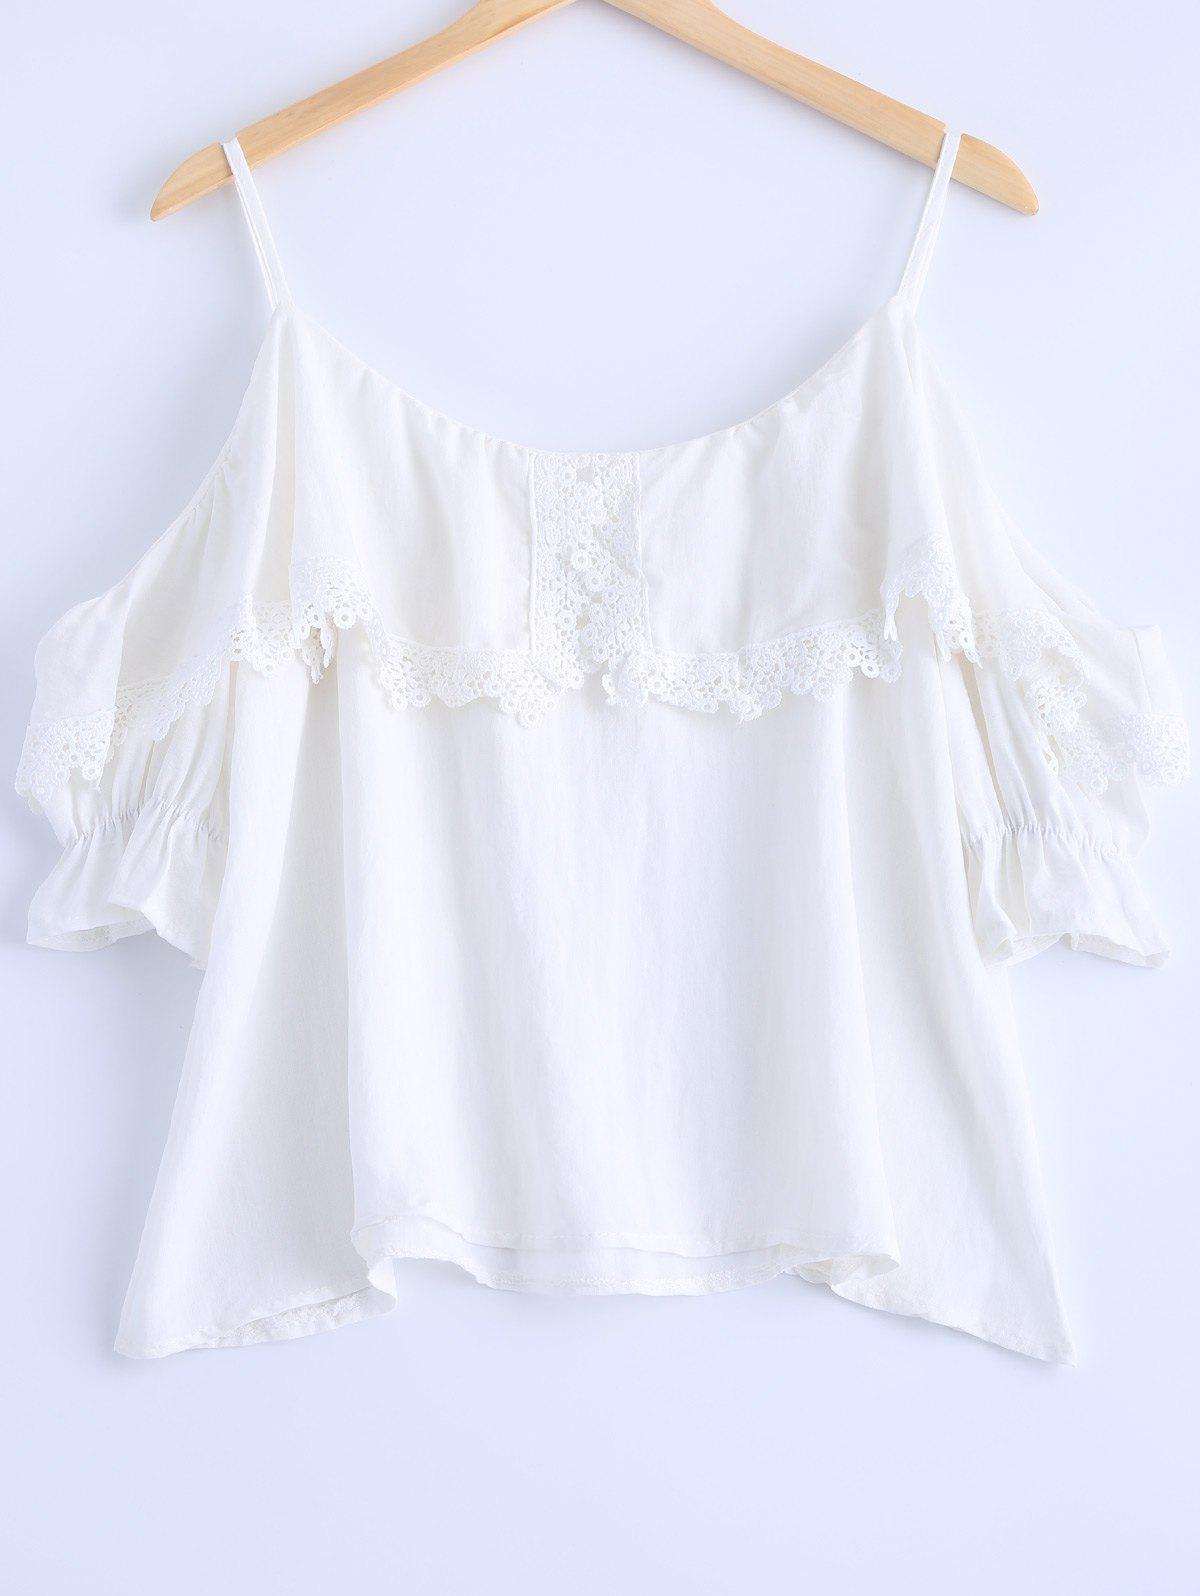 Stylish Women's Cold Shoulder Lace Embellished Short Sleeves Top - WHITE ONE SIZE(FIT SIZE XS TO M)